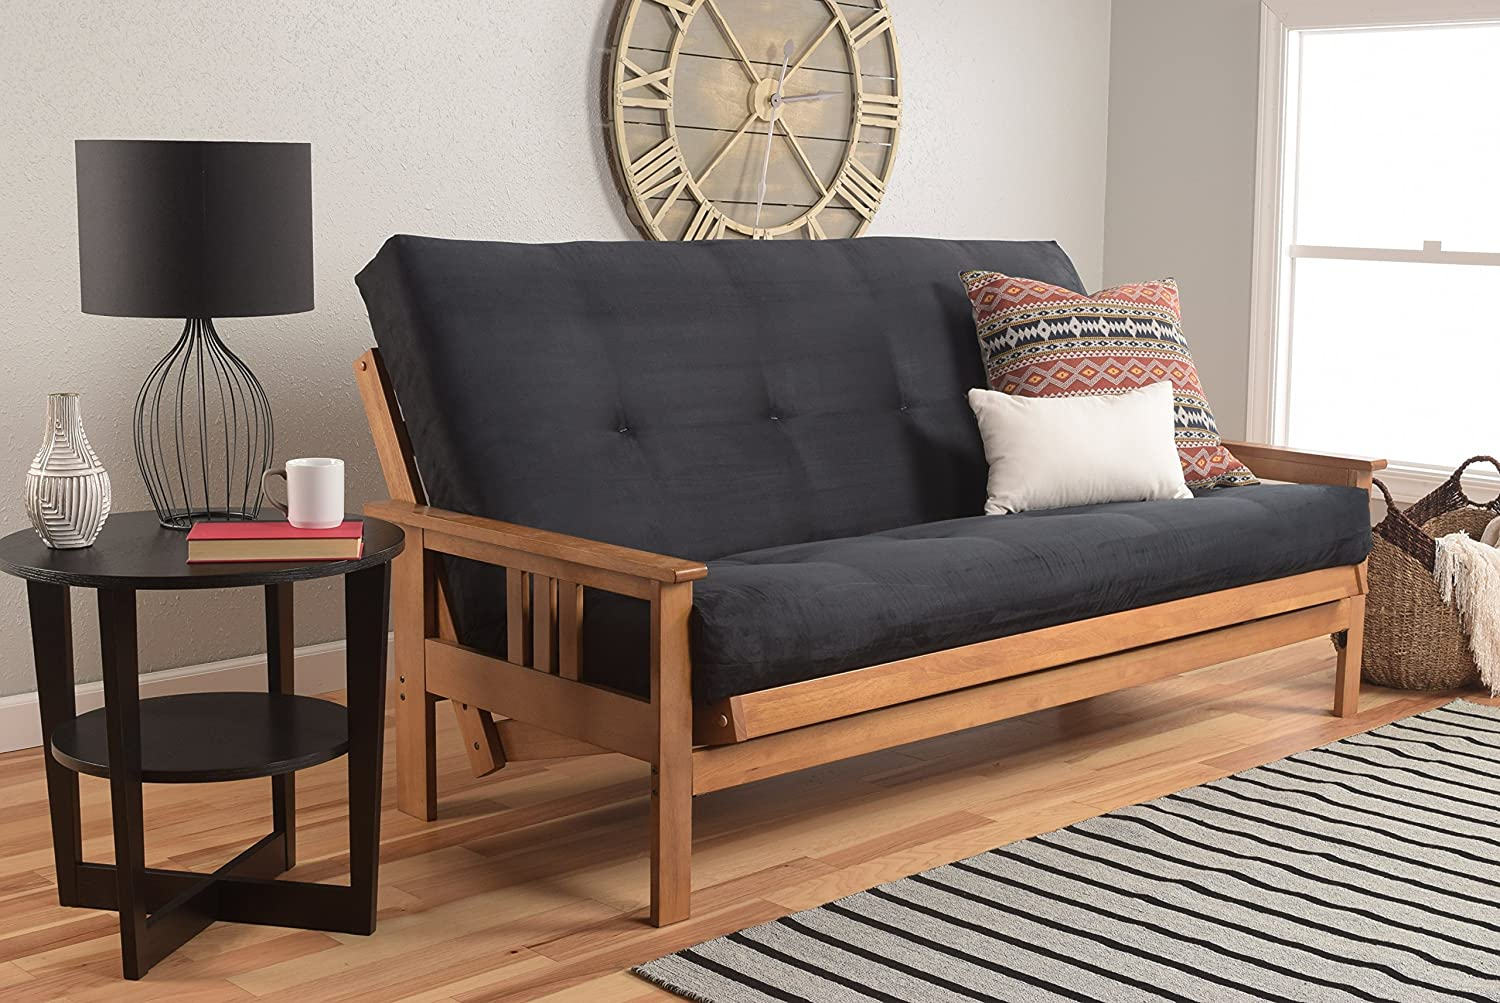 Wondrous Michael Anthony Furniture Monterey Full Size Futon Sofa Bed Butternut Wood Frame Suede Innerspring Mattress Black Download Free Architecture Designs Grimeyleaguecom